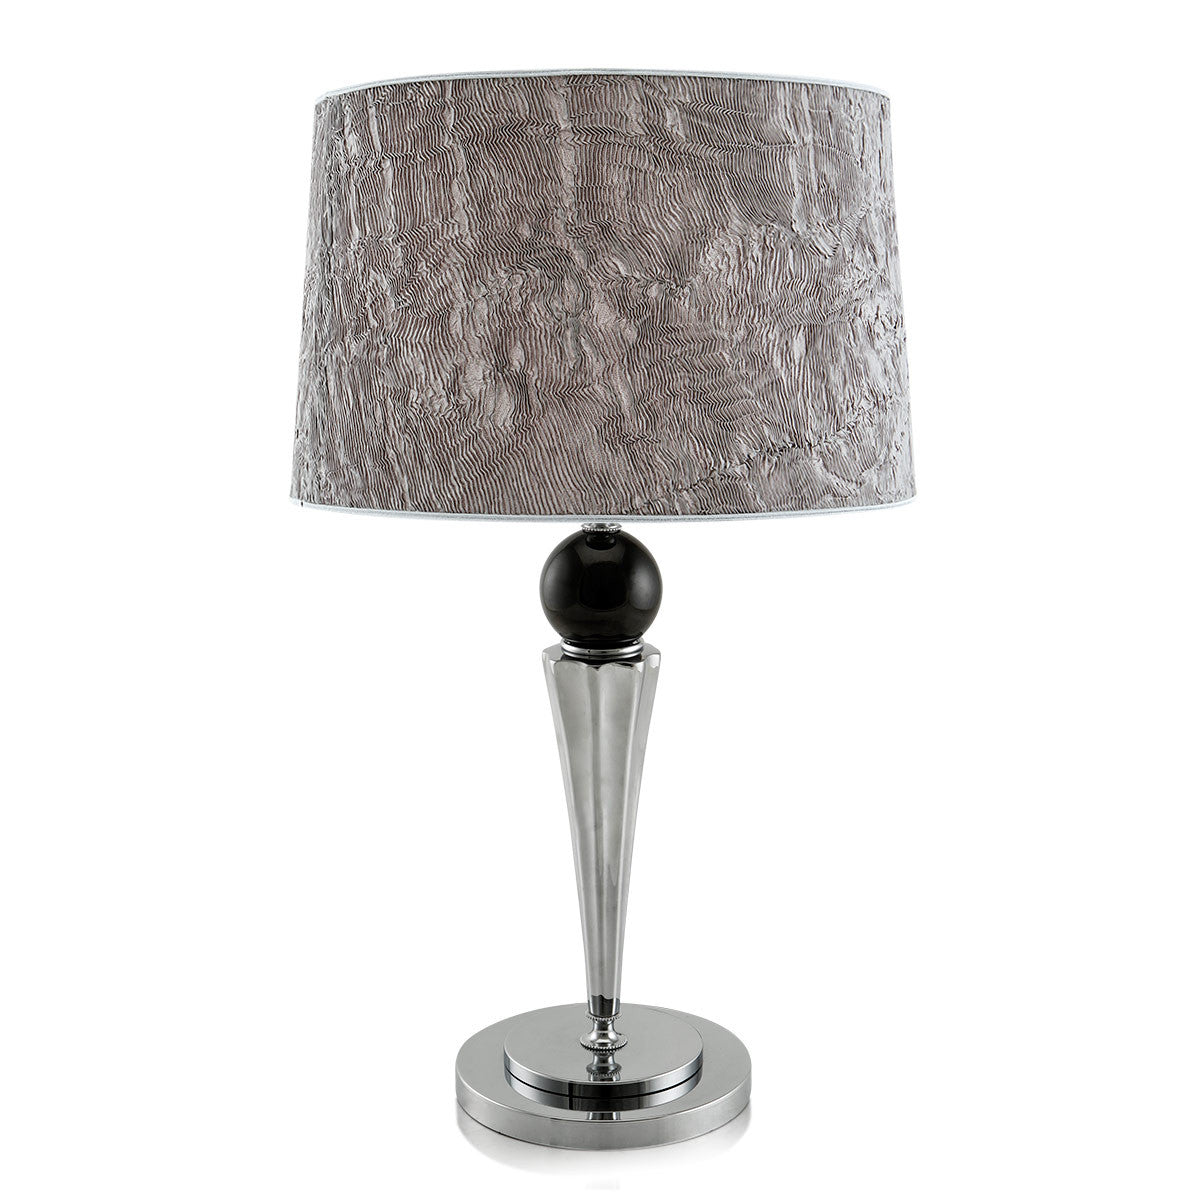 Table Lamp | Honduras in silver metal with black glass sphere.